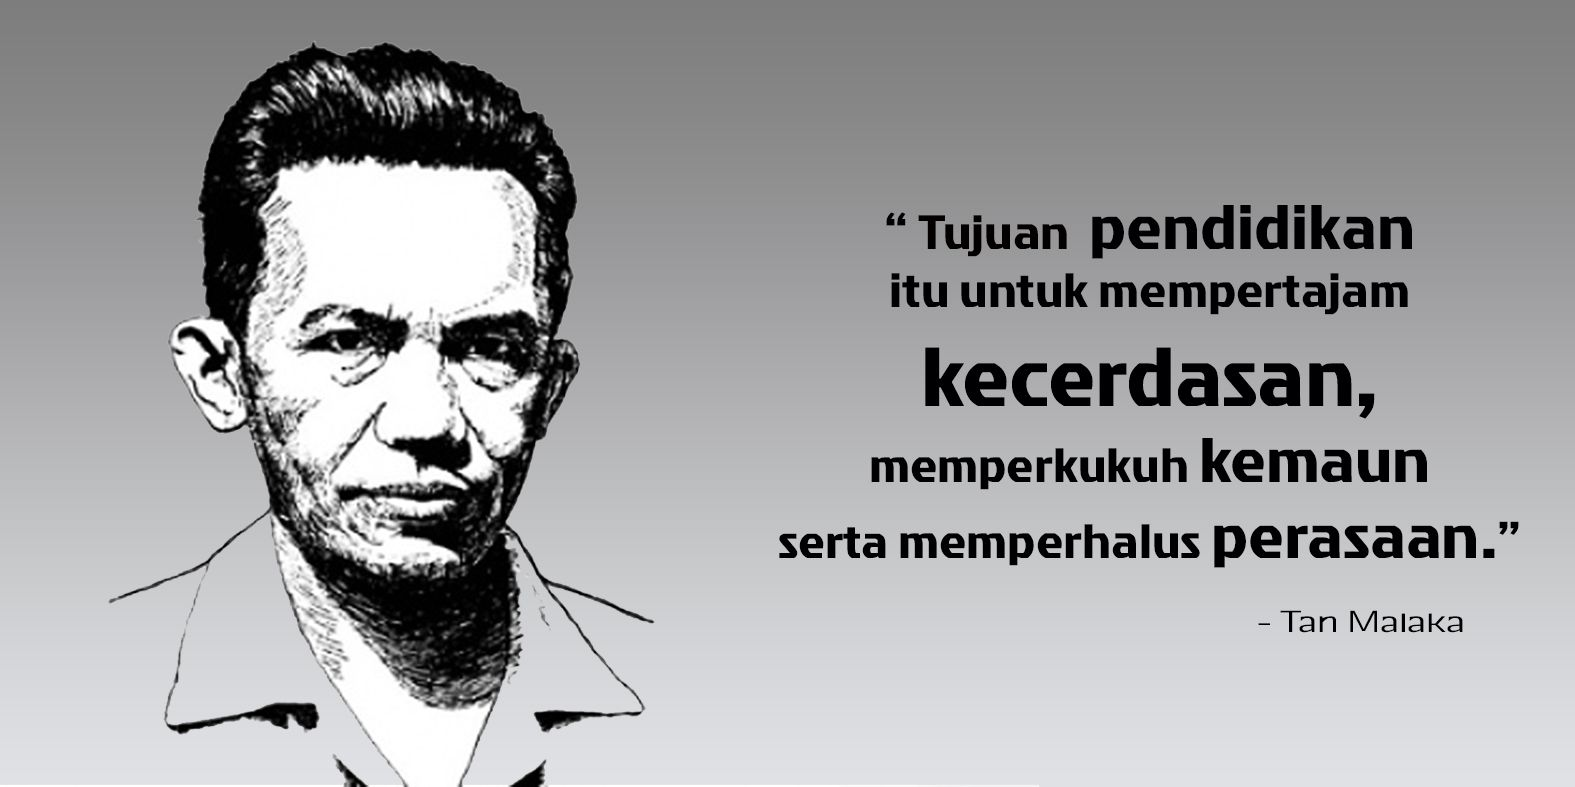 Quote By Tan Malaka Http Efekgila Com Quote Tan Malaka